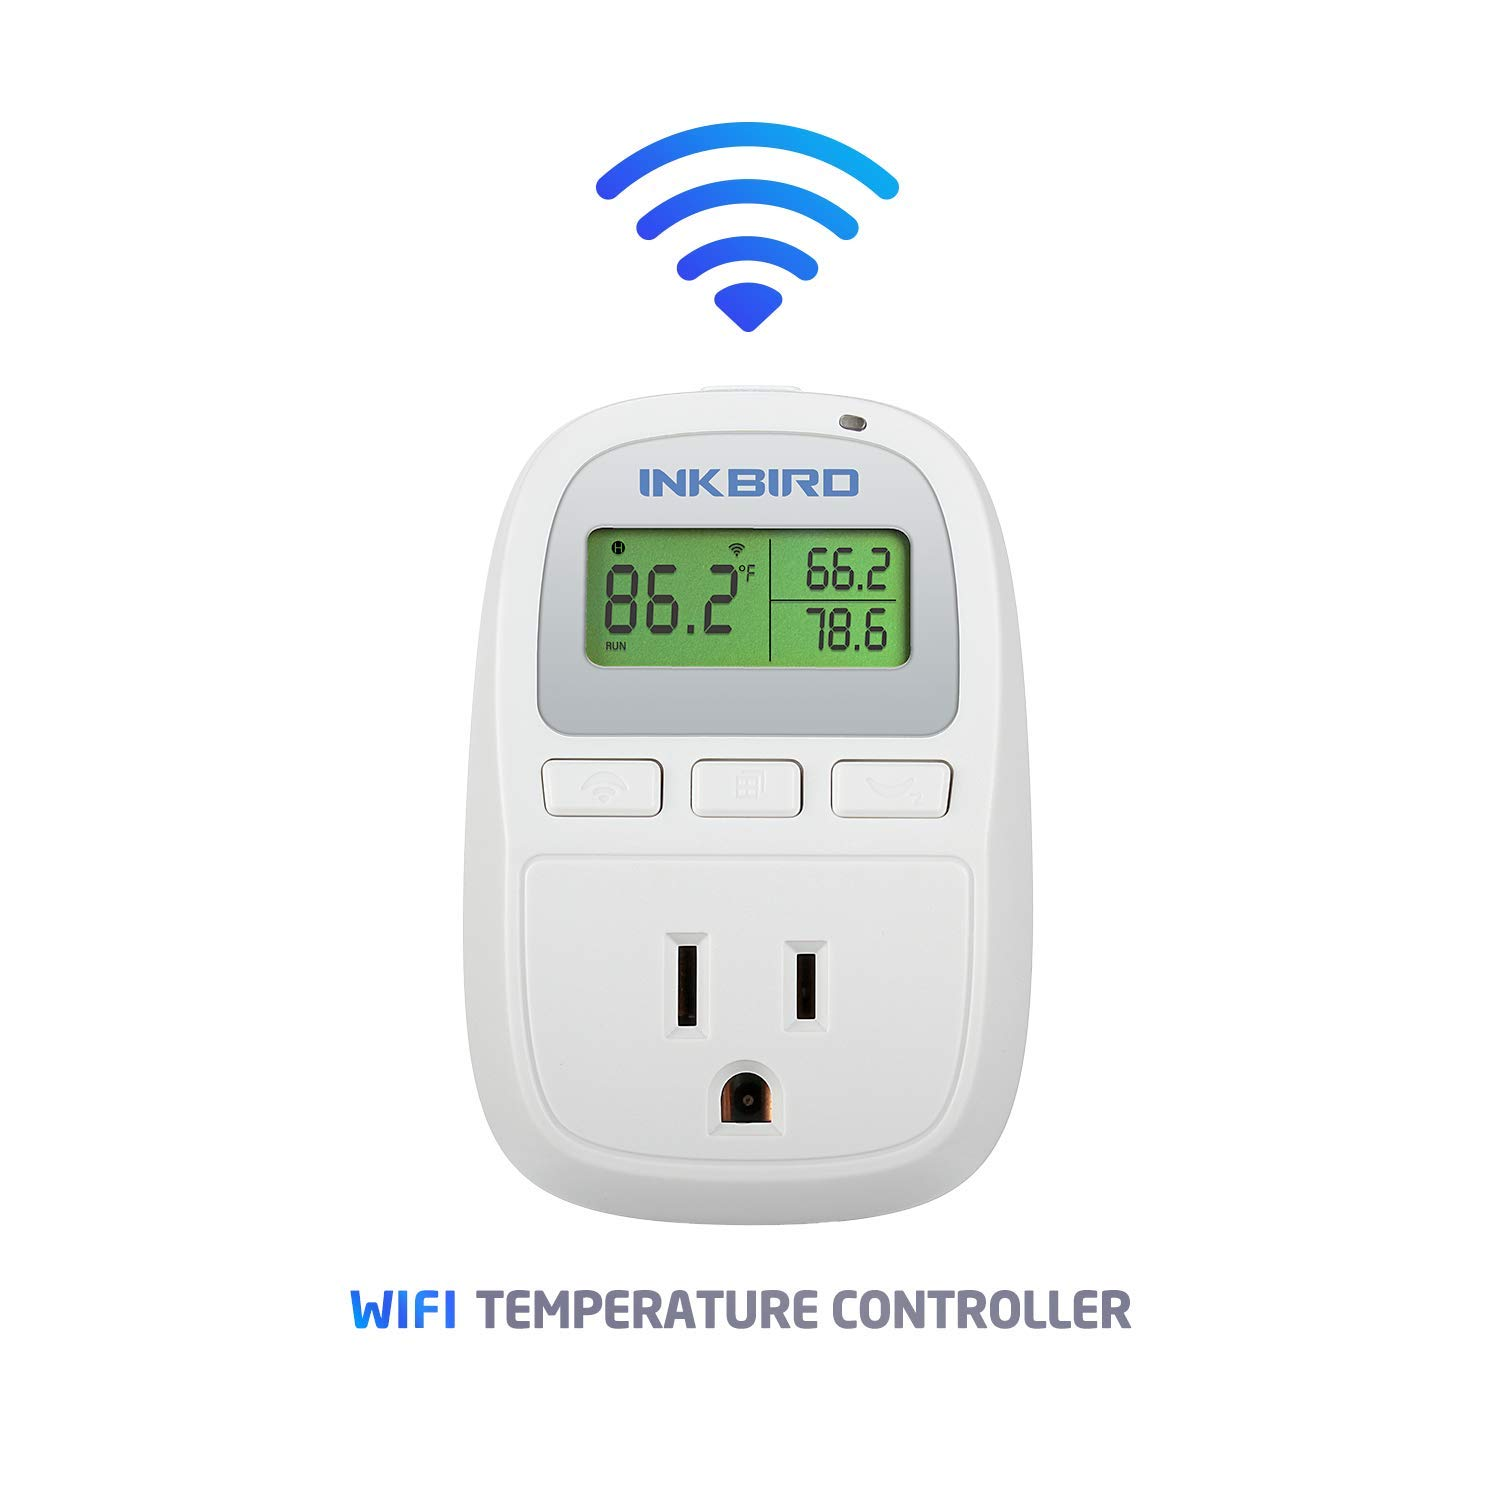 Inkbird C929 Smart Digital WiFi Temperature Controller 120VAC 1200W Heater or Cooler Thermostat Homebrewing Reptiles Terrarium Greenhouse Heat Mat